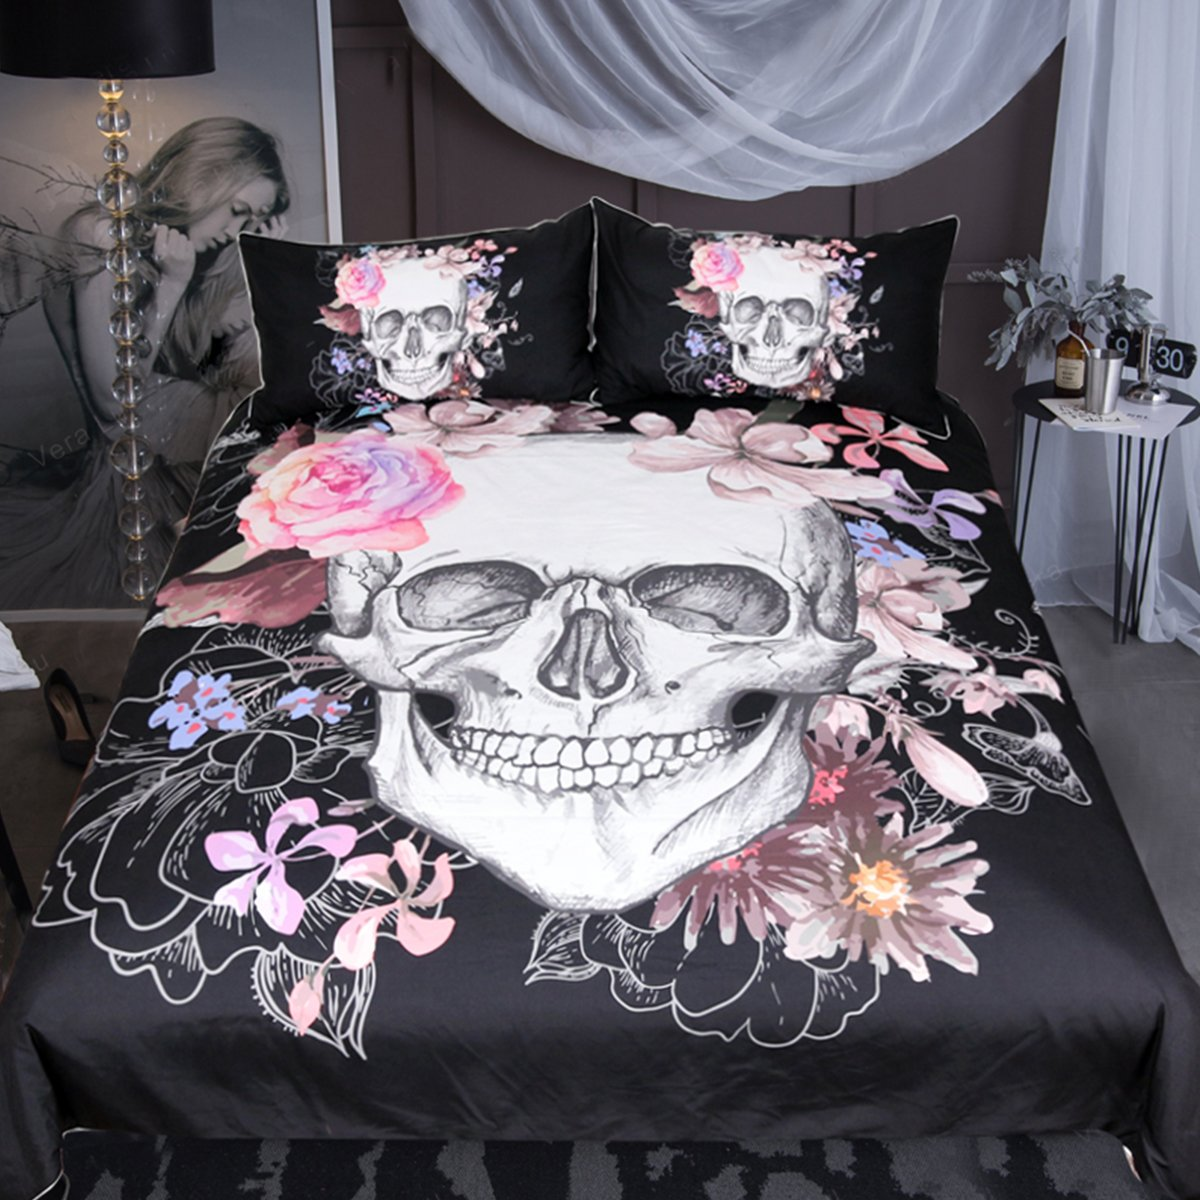 Sleepwish Sugar Skull Rose Bedding Pink Black White Duvet Cover Boys Skull Bedspread 3 Piece Duvet Cover Sets (Queen)